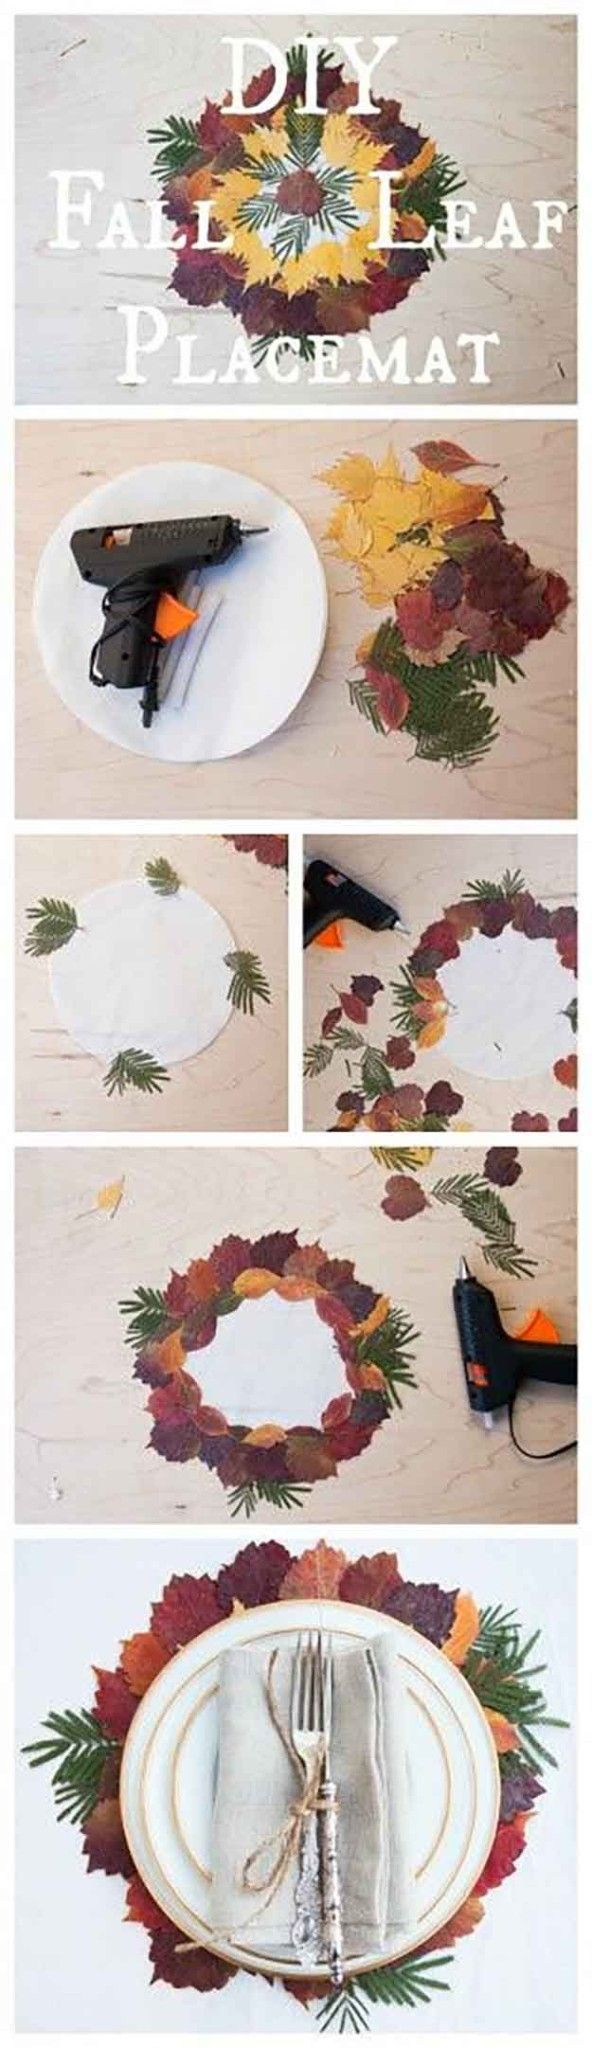 Placemat DIY Con Caída Actual hojas | 14 Manteles DIY para Acción de Gracias, échale un vistazo a http://artesaniasdebricolaje.ru/homemade-thanksgiving-decorations-14-diy-placemat-ideas